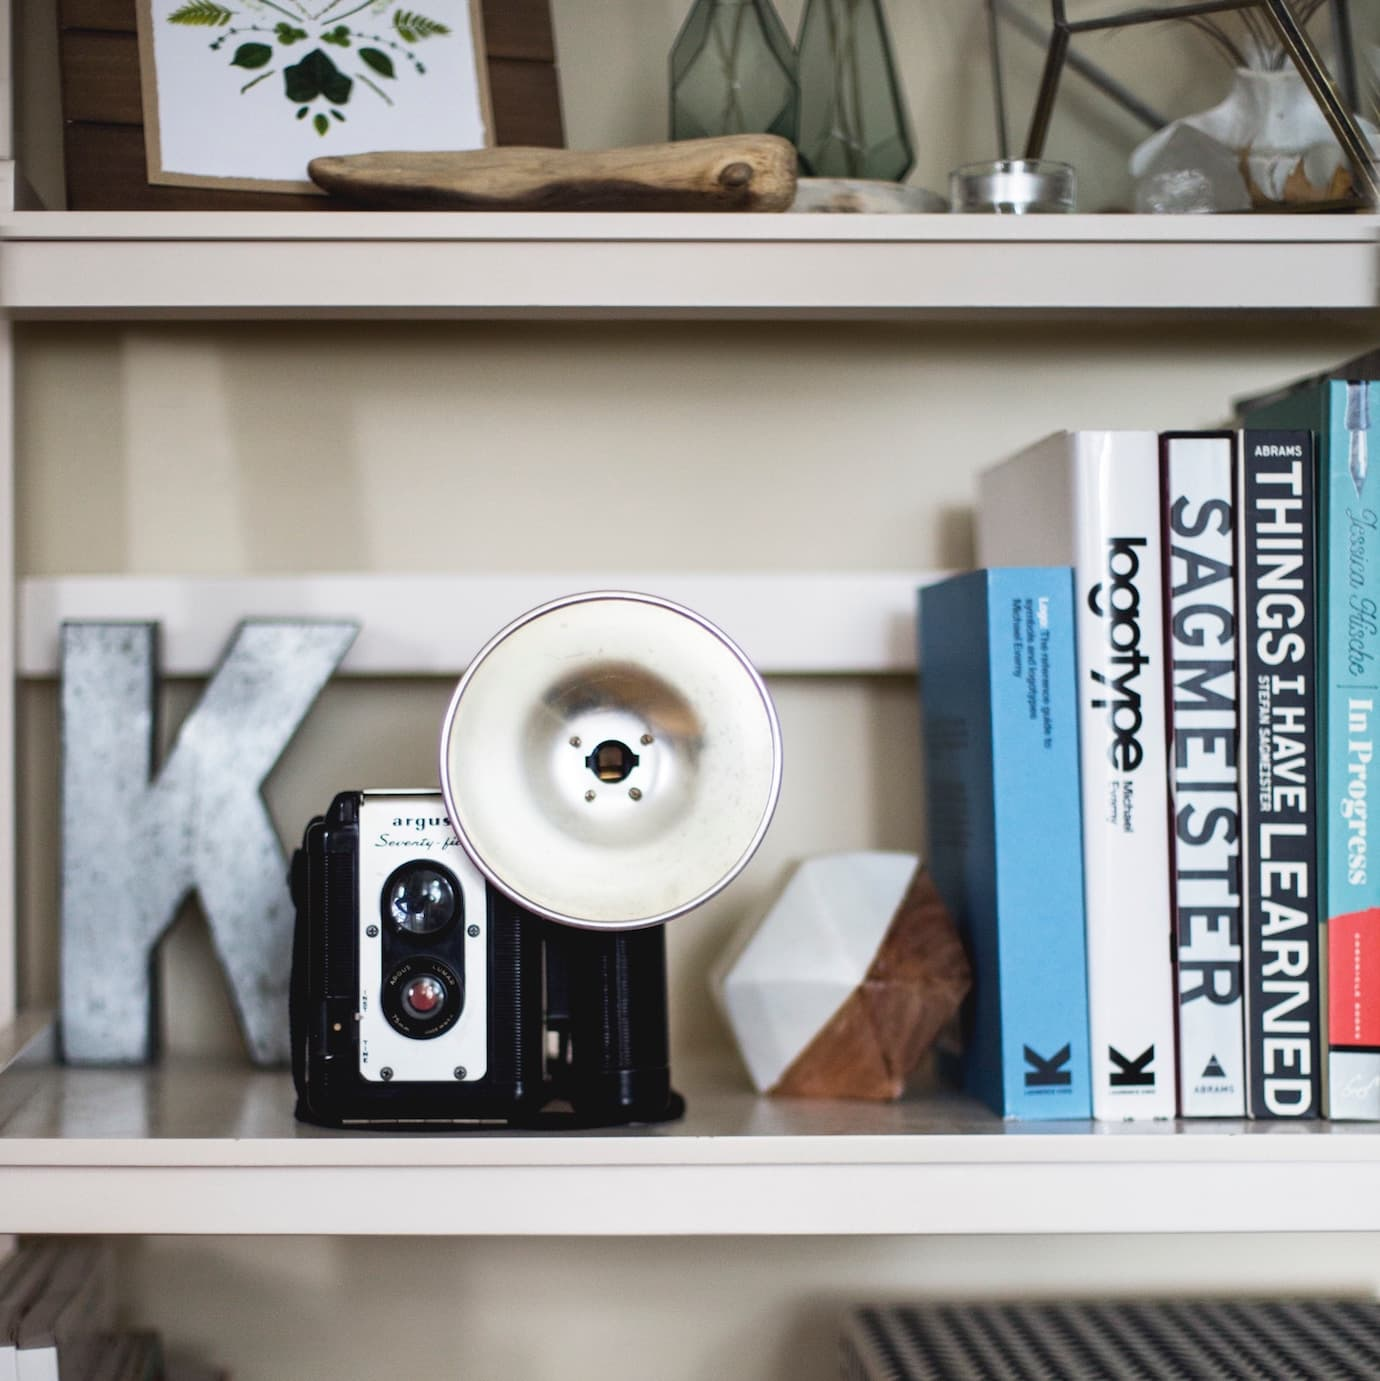 Create homey feel with books, decor and curios on shelving